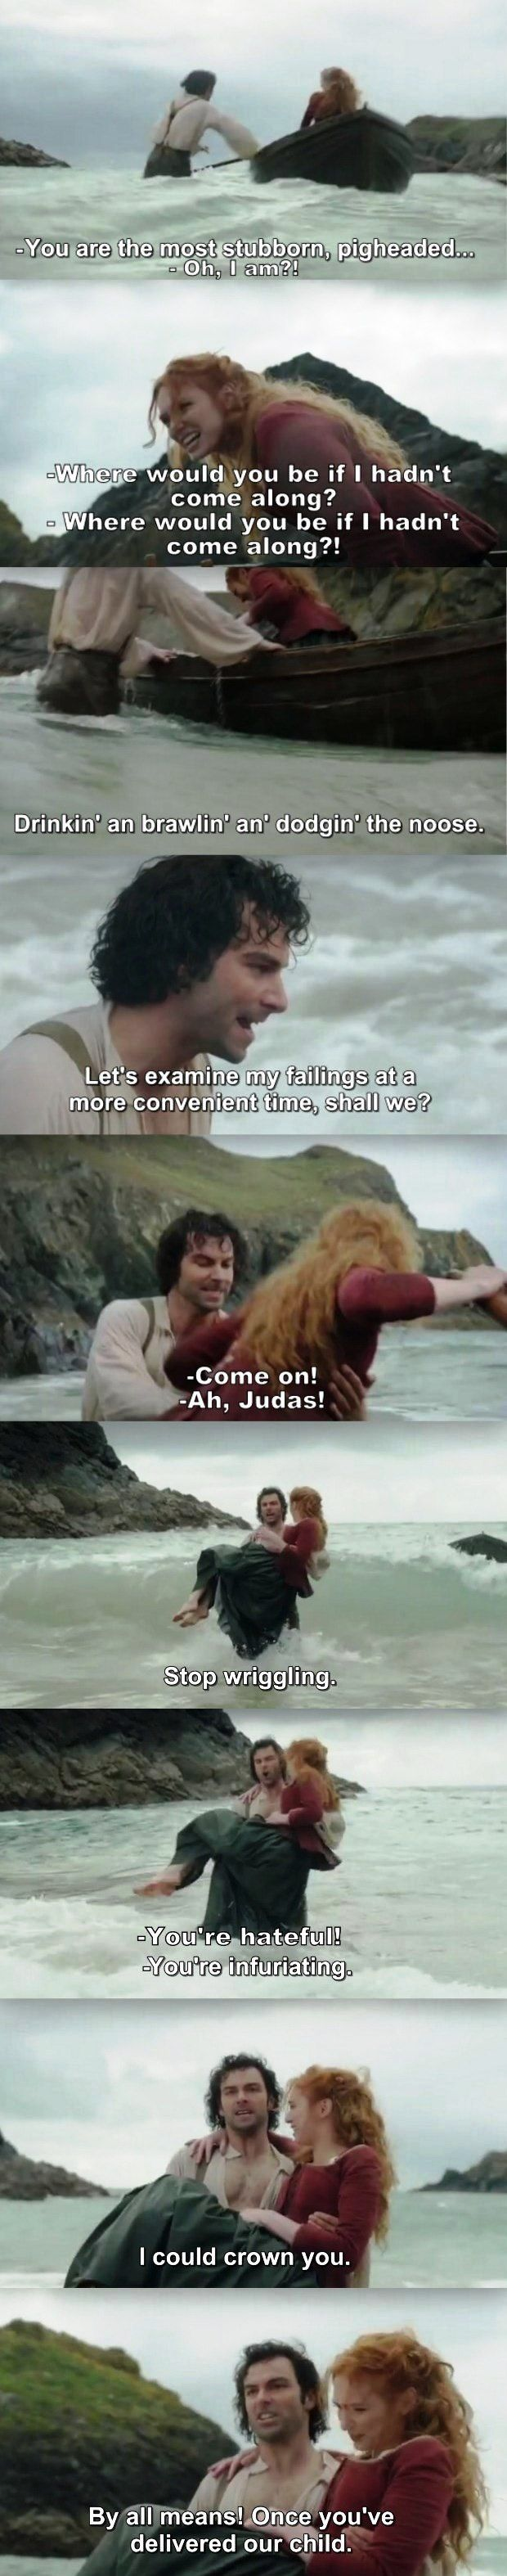 """""""You're the most stubborn, pigheaded!"""" - Ross and Demelza #Poldark"""